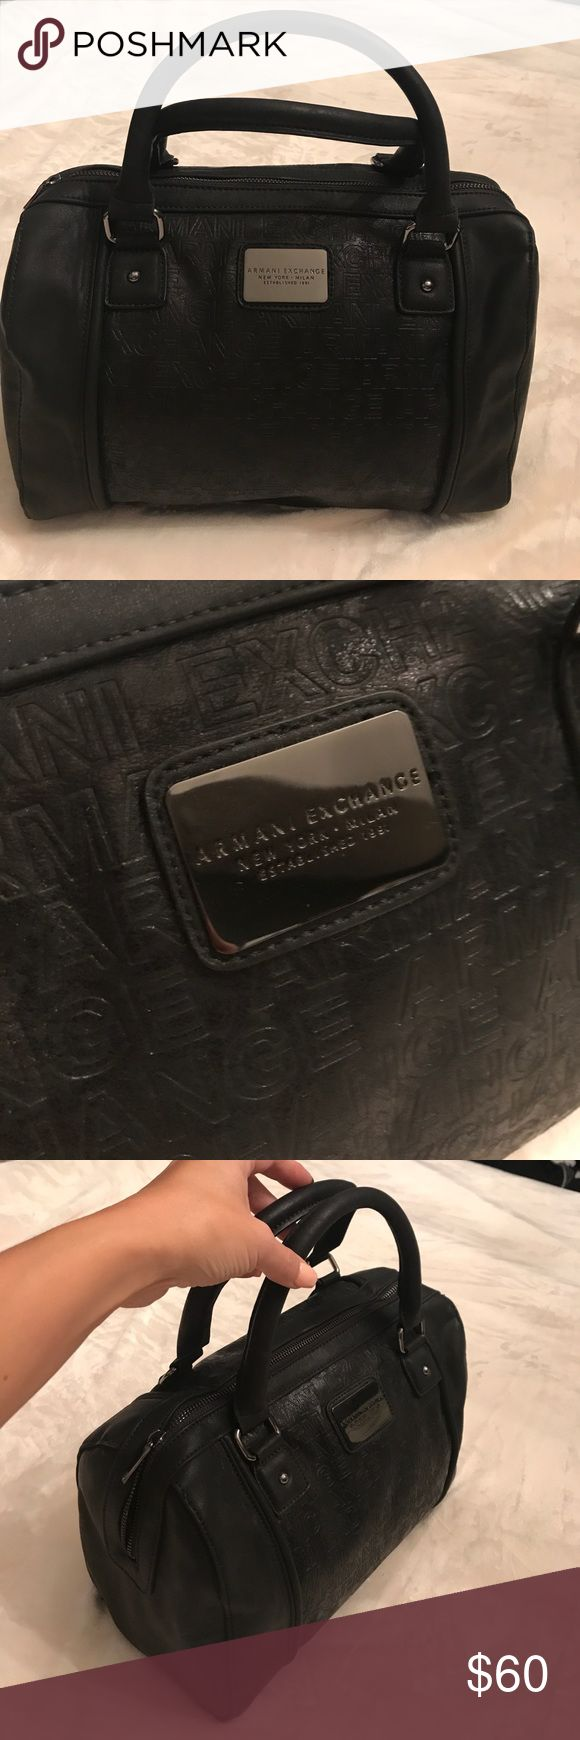 🍁 NWT Armani Exchange black bag 🍁 New with tag Armani Exchange black bag. Armani Exchange Bags Satchels